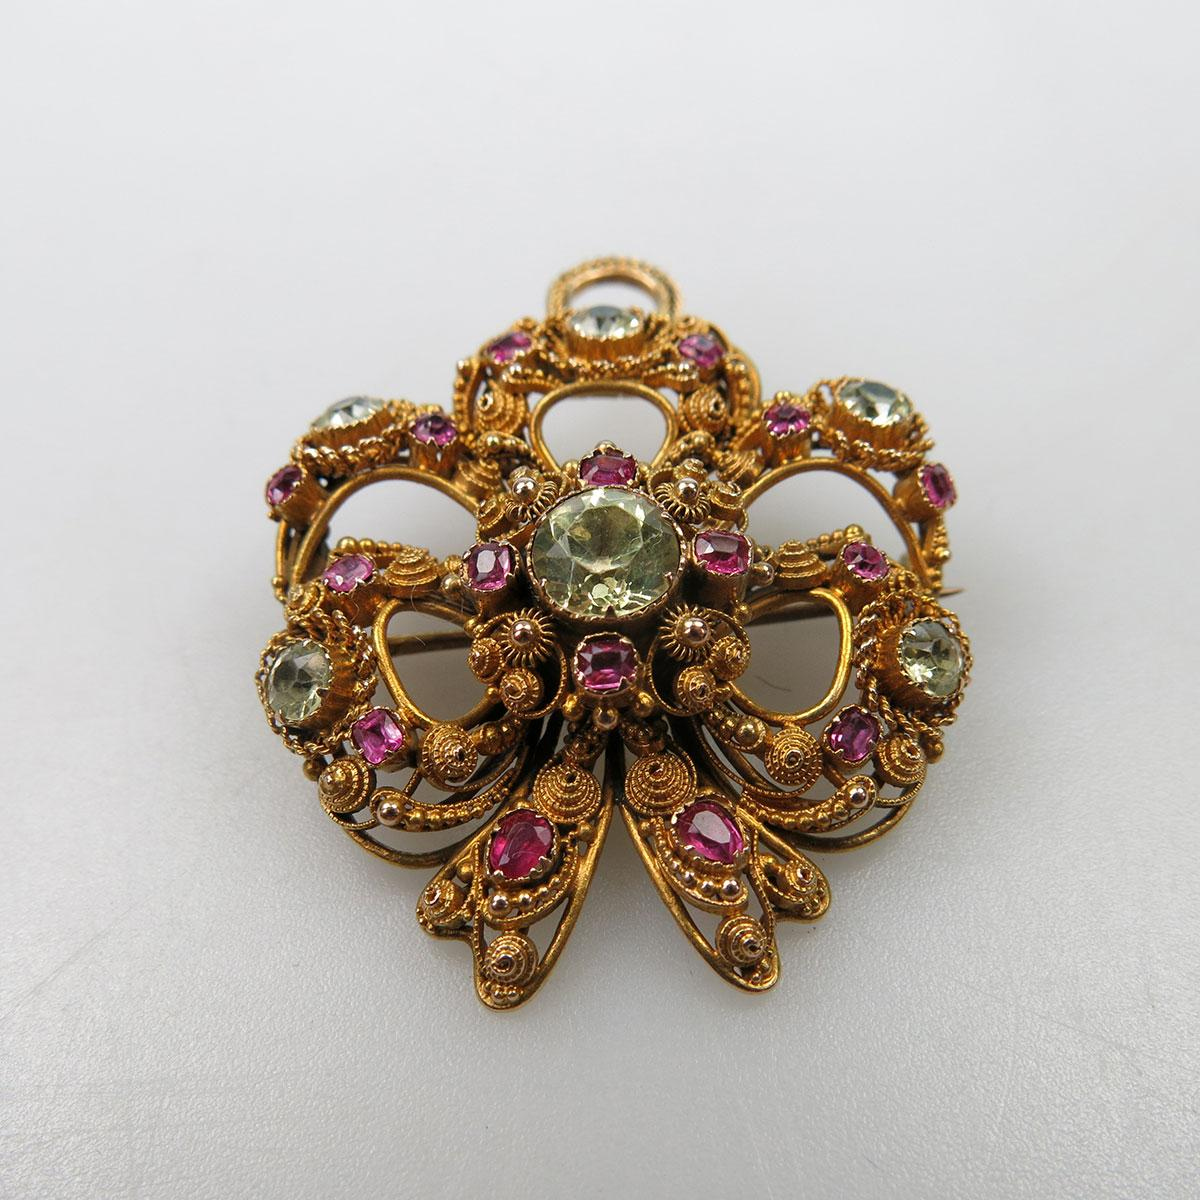 14k Yellow Gold Brooch/Pendant